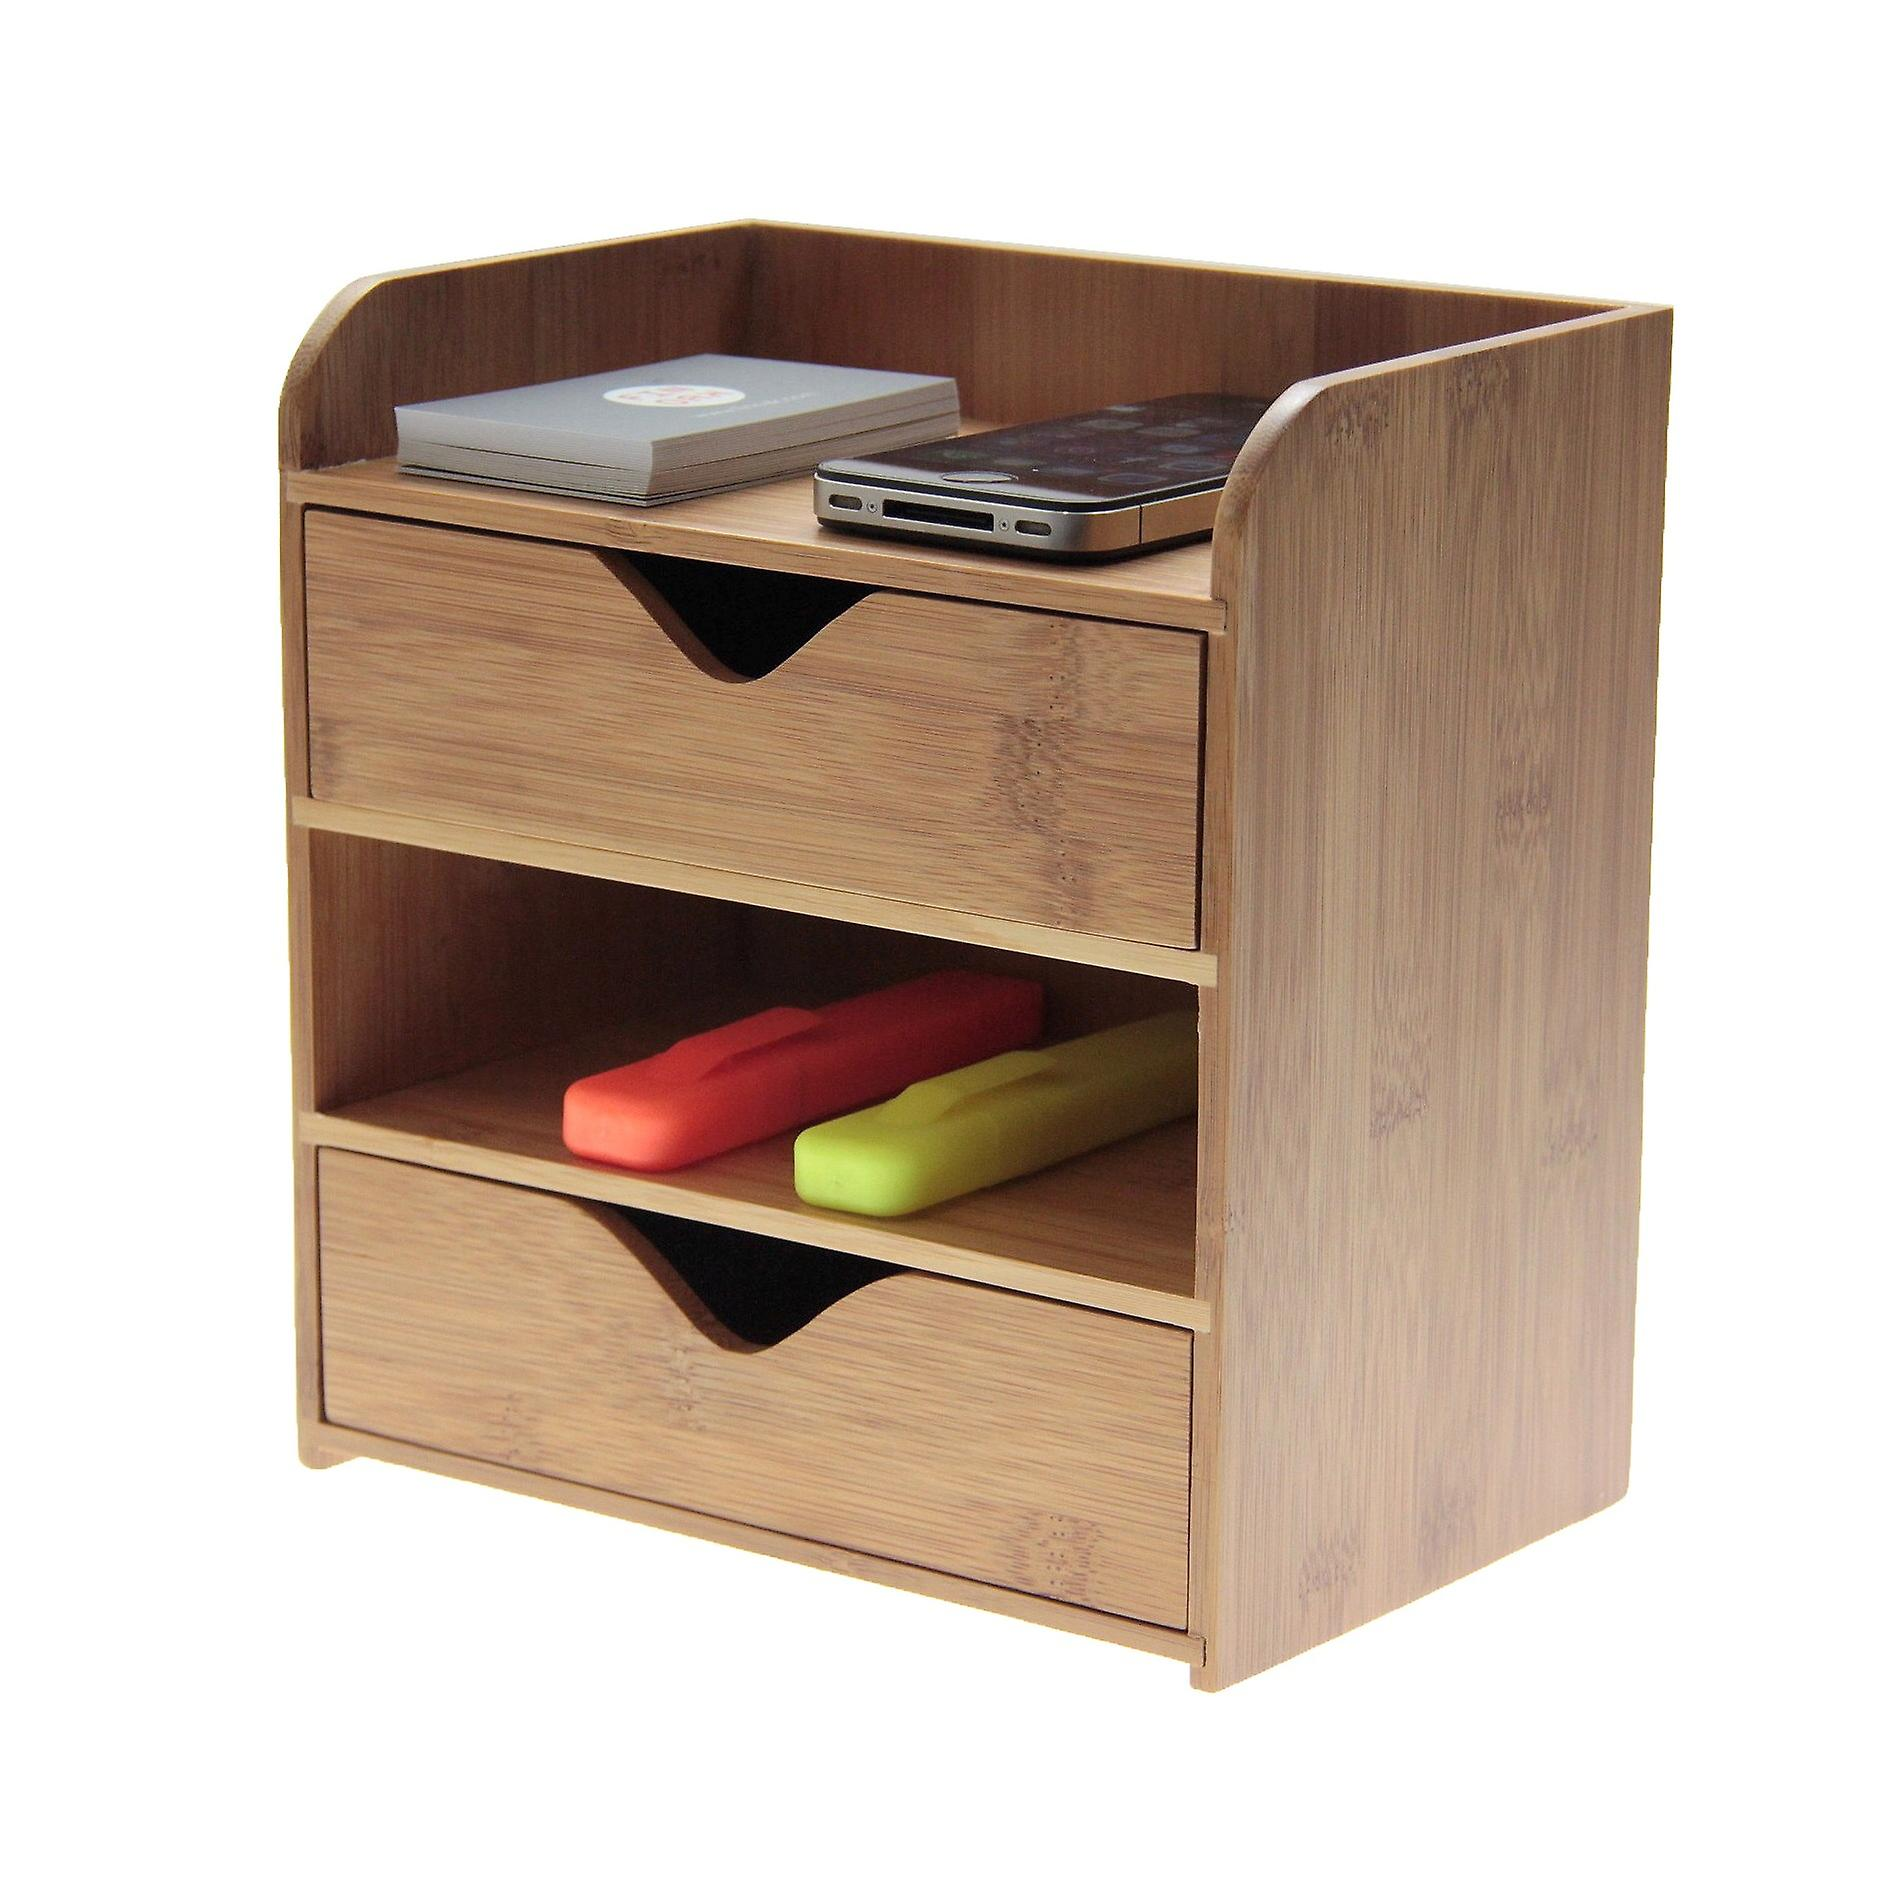 Woodquail Bamboo 4 Tier Desk Organiser Stationery Box, Desk Tidy, Office Suppliers